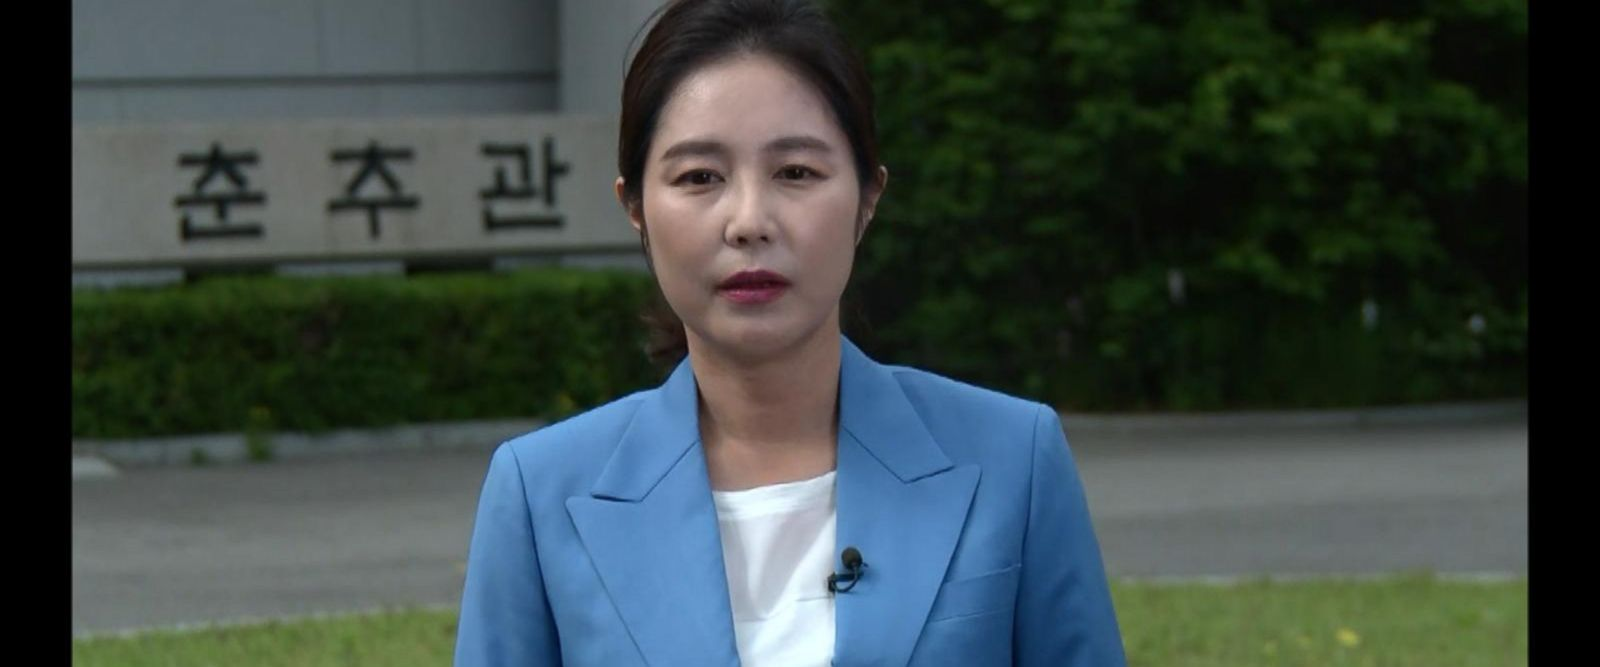 VIDEO: South Korean president diffuses 'difficulties' with North Korea